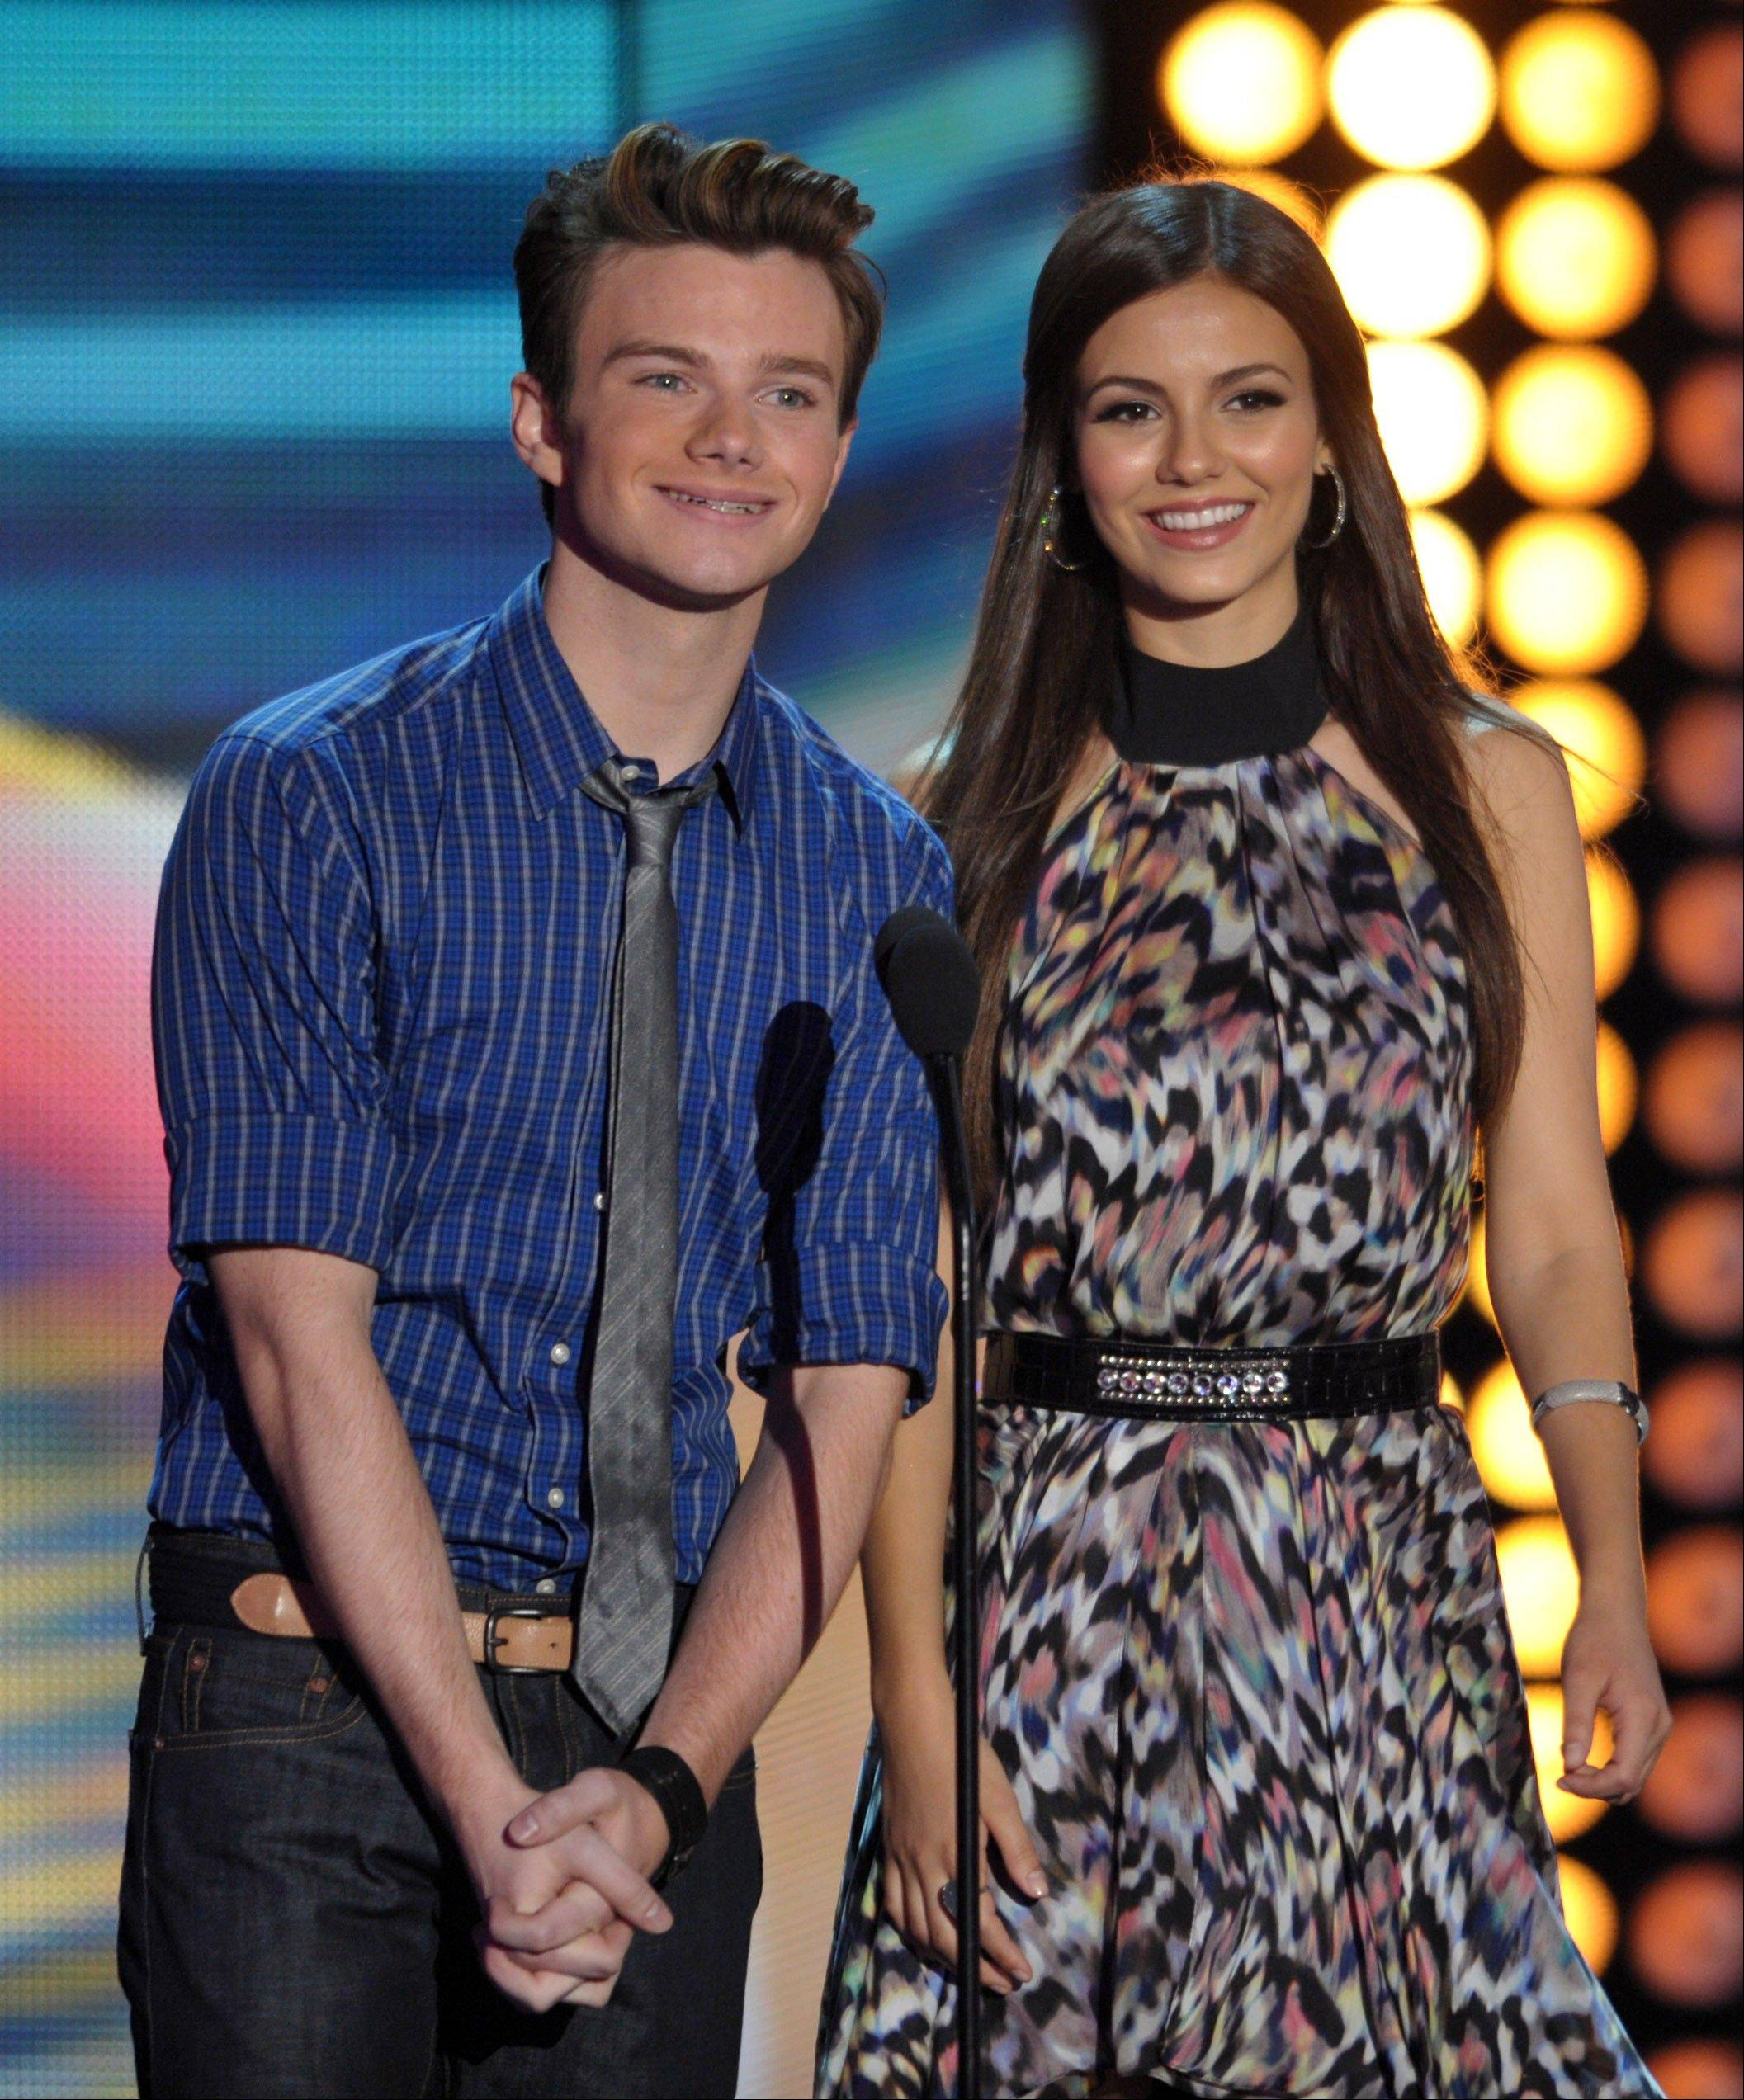 Chris Colfer and Victoria Justice speak onstage at the Teen Choice Awards on Sunday.